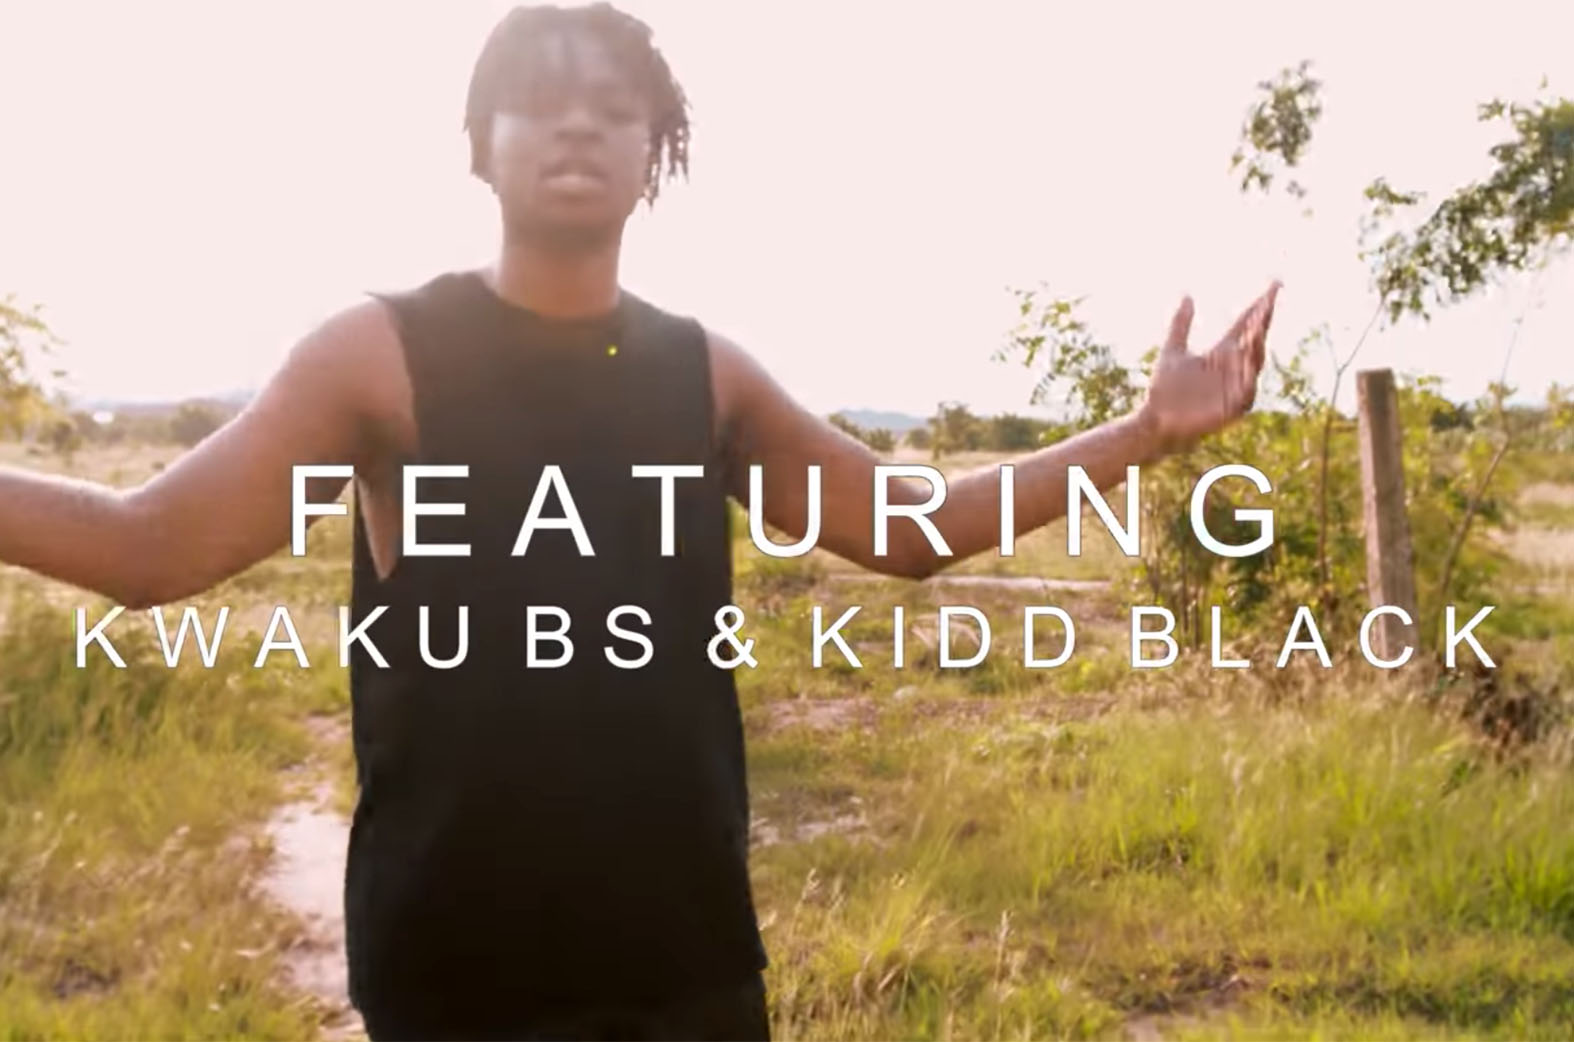 Video: Who Want Jam by Magnom feat. Kwaku Bs & Kidd Black